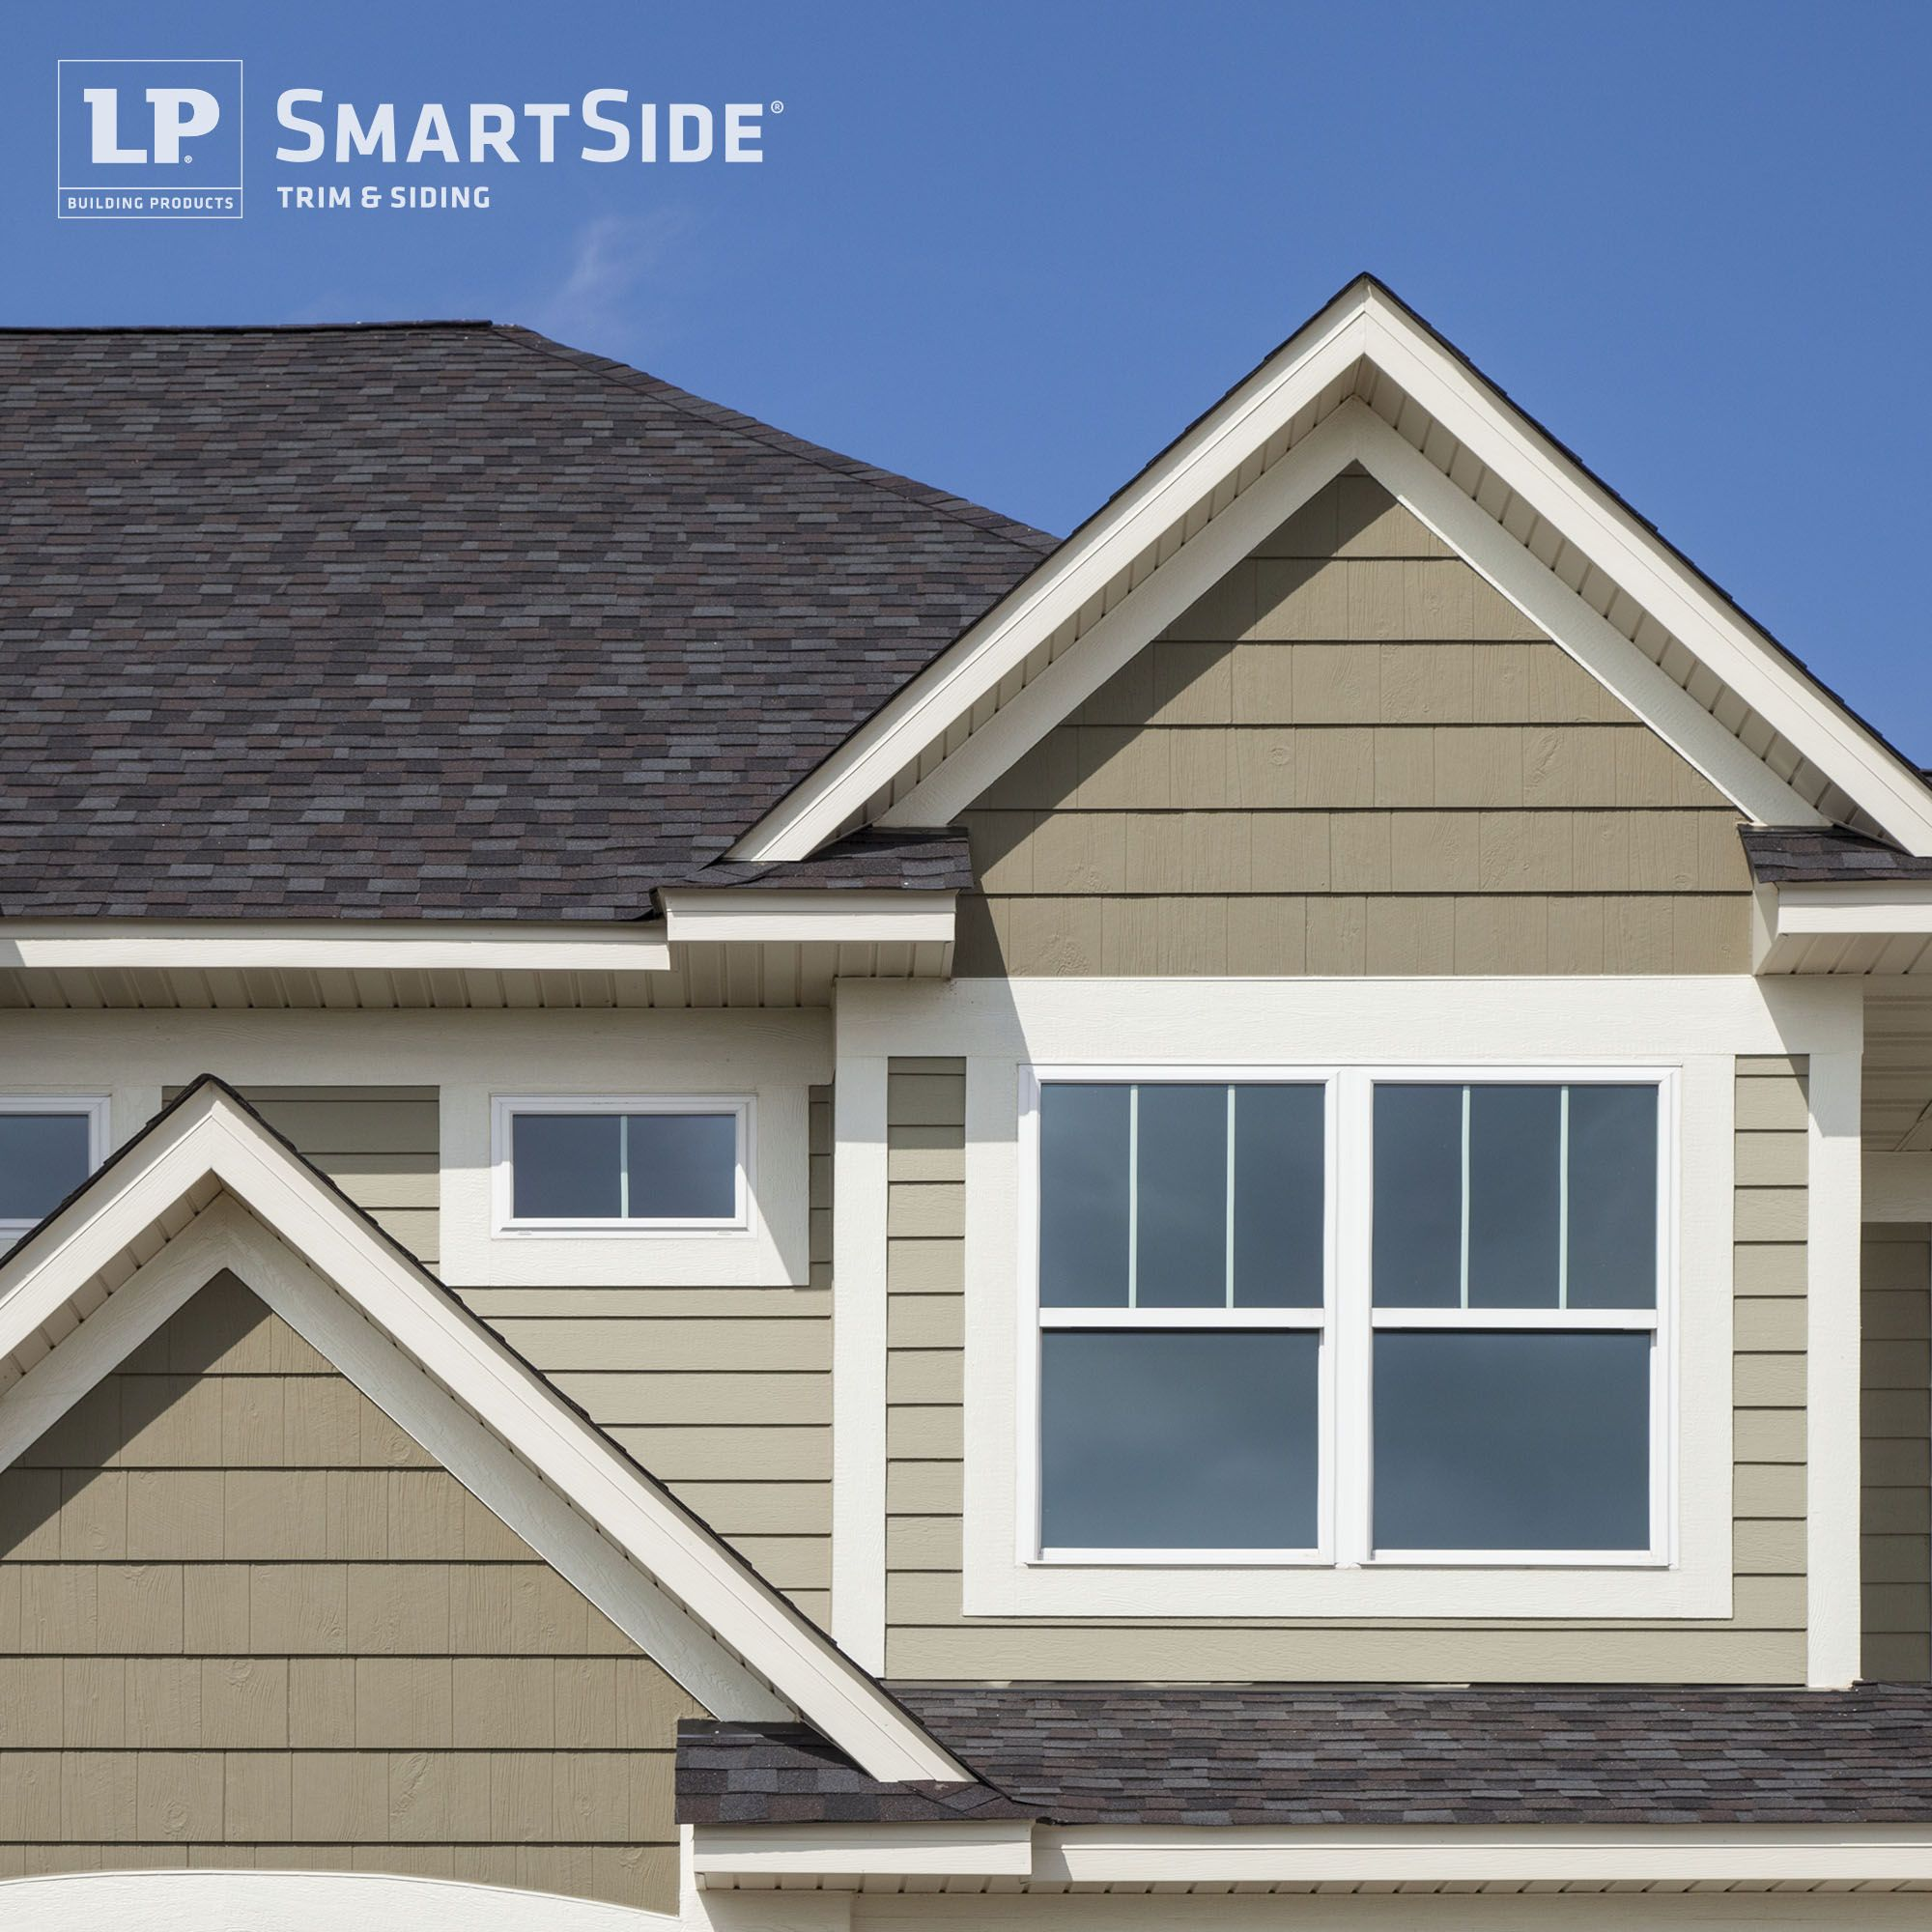 Lp Smartside Cedar Shakes Trim And Lap Siding In Neutral Tones Create A Timeless Sophisticated Look For This Tradition Cedar Shake Siding Siding Cedar Shakes